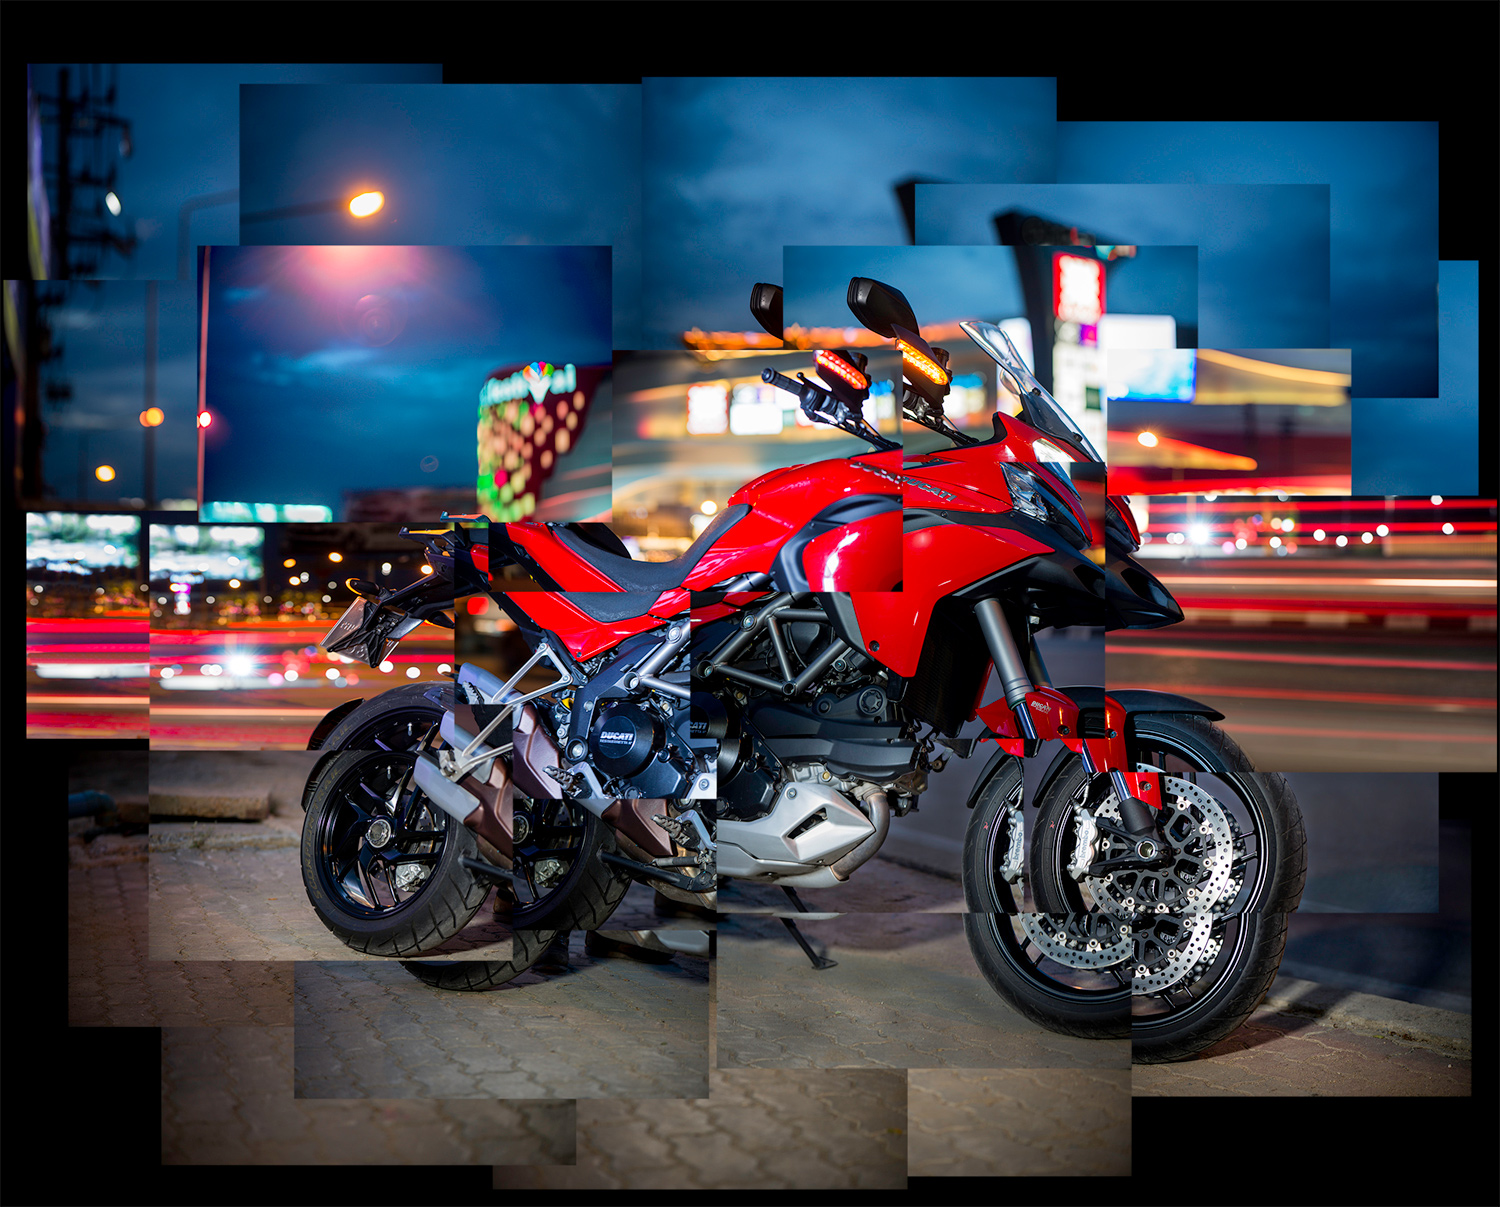 Ducati How To Make Amazing Photomontages